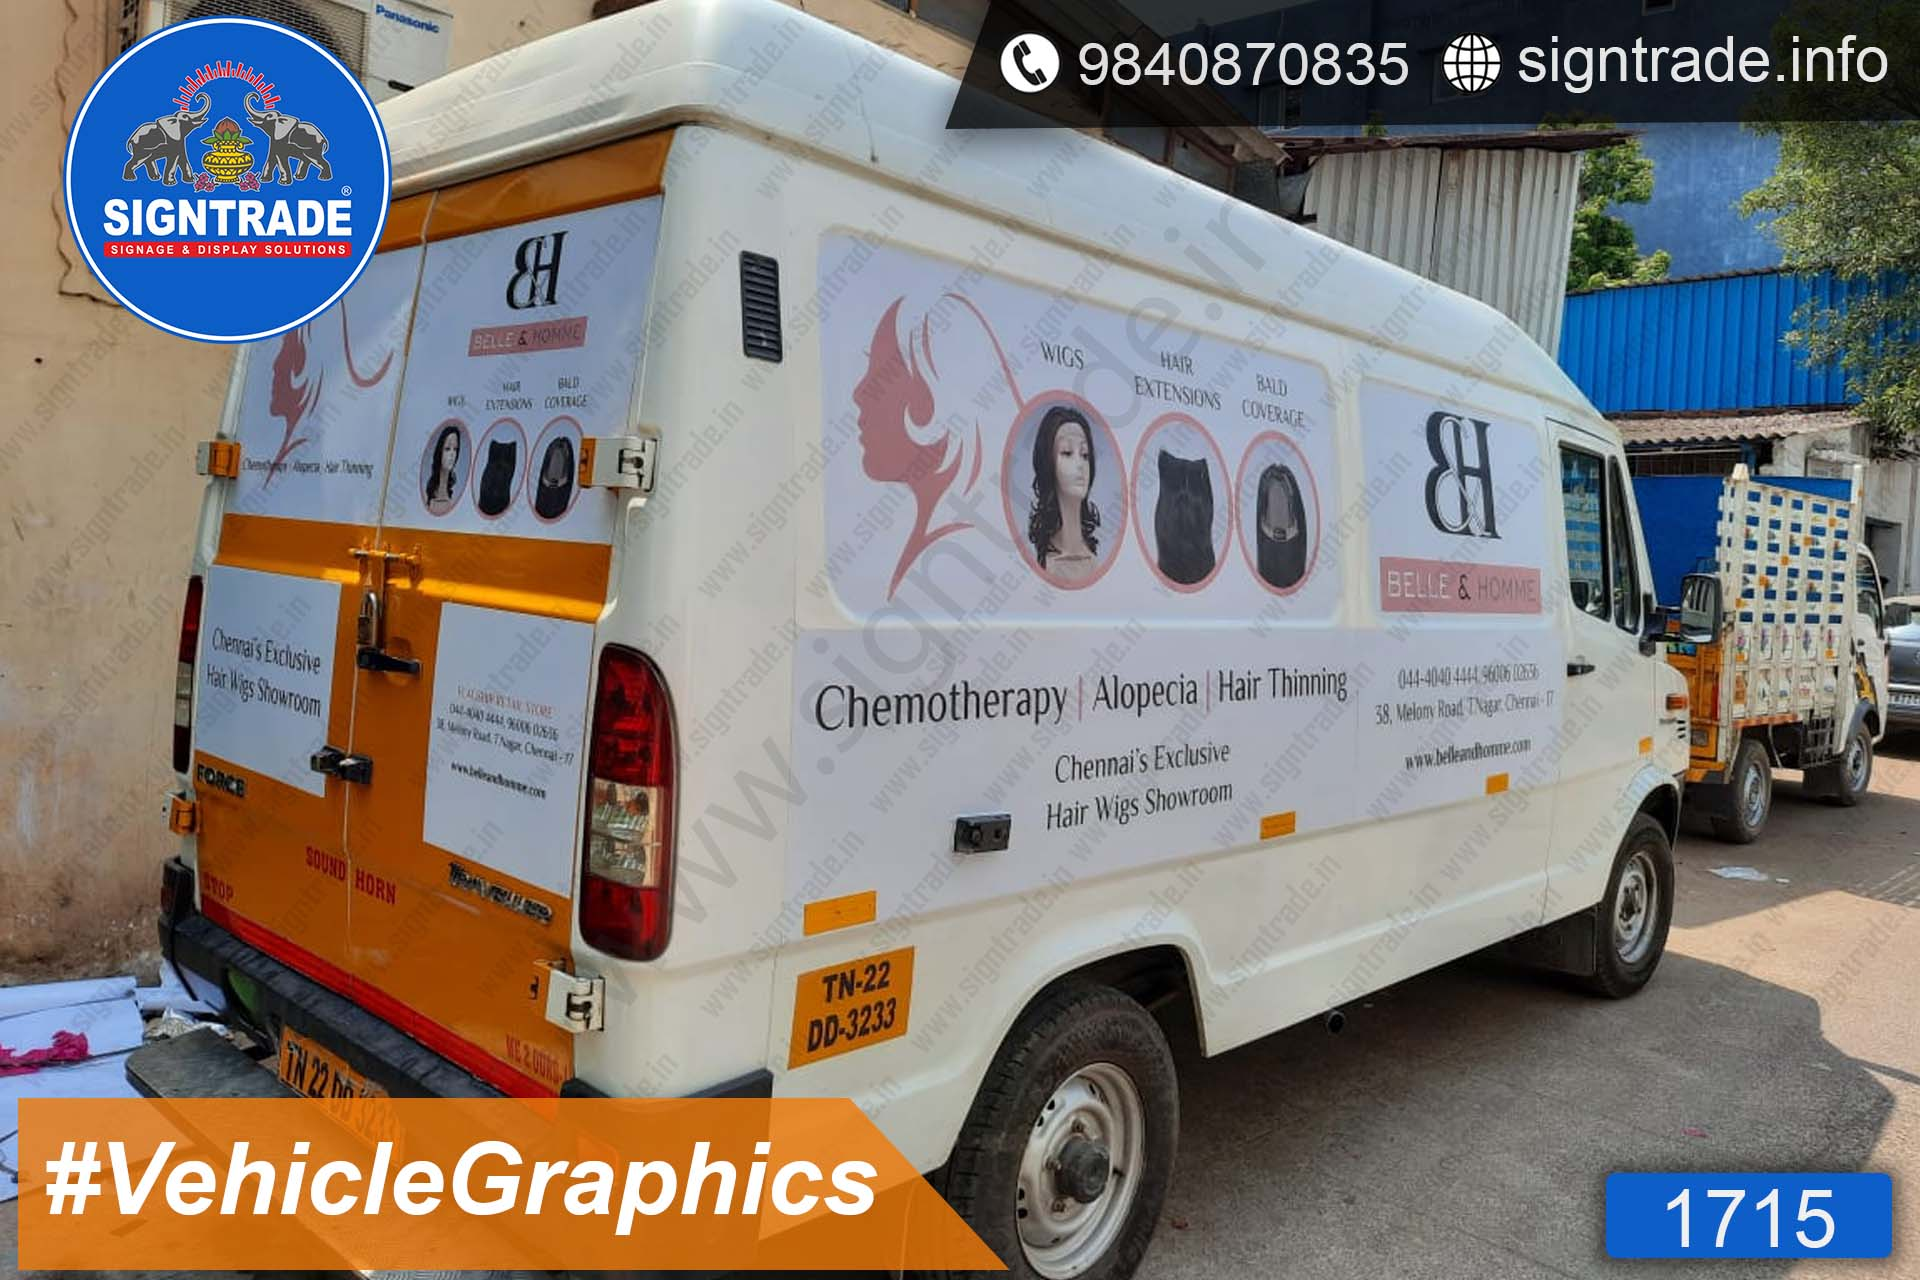 BELLE and HOMME - Hair Wing Showroom, Chennai - SIGNTRADE - Vinyl Printing, Vehicle Graphics Service in Chennai